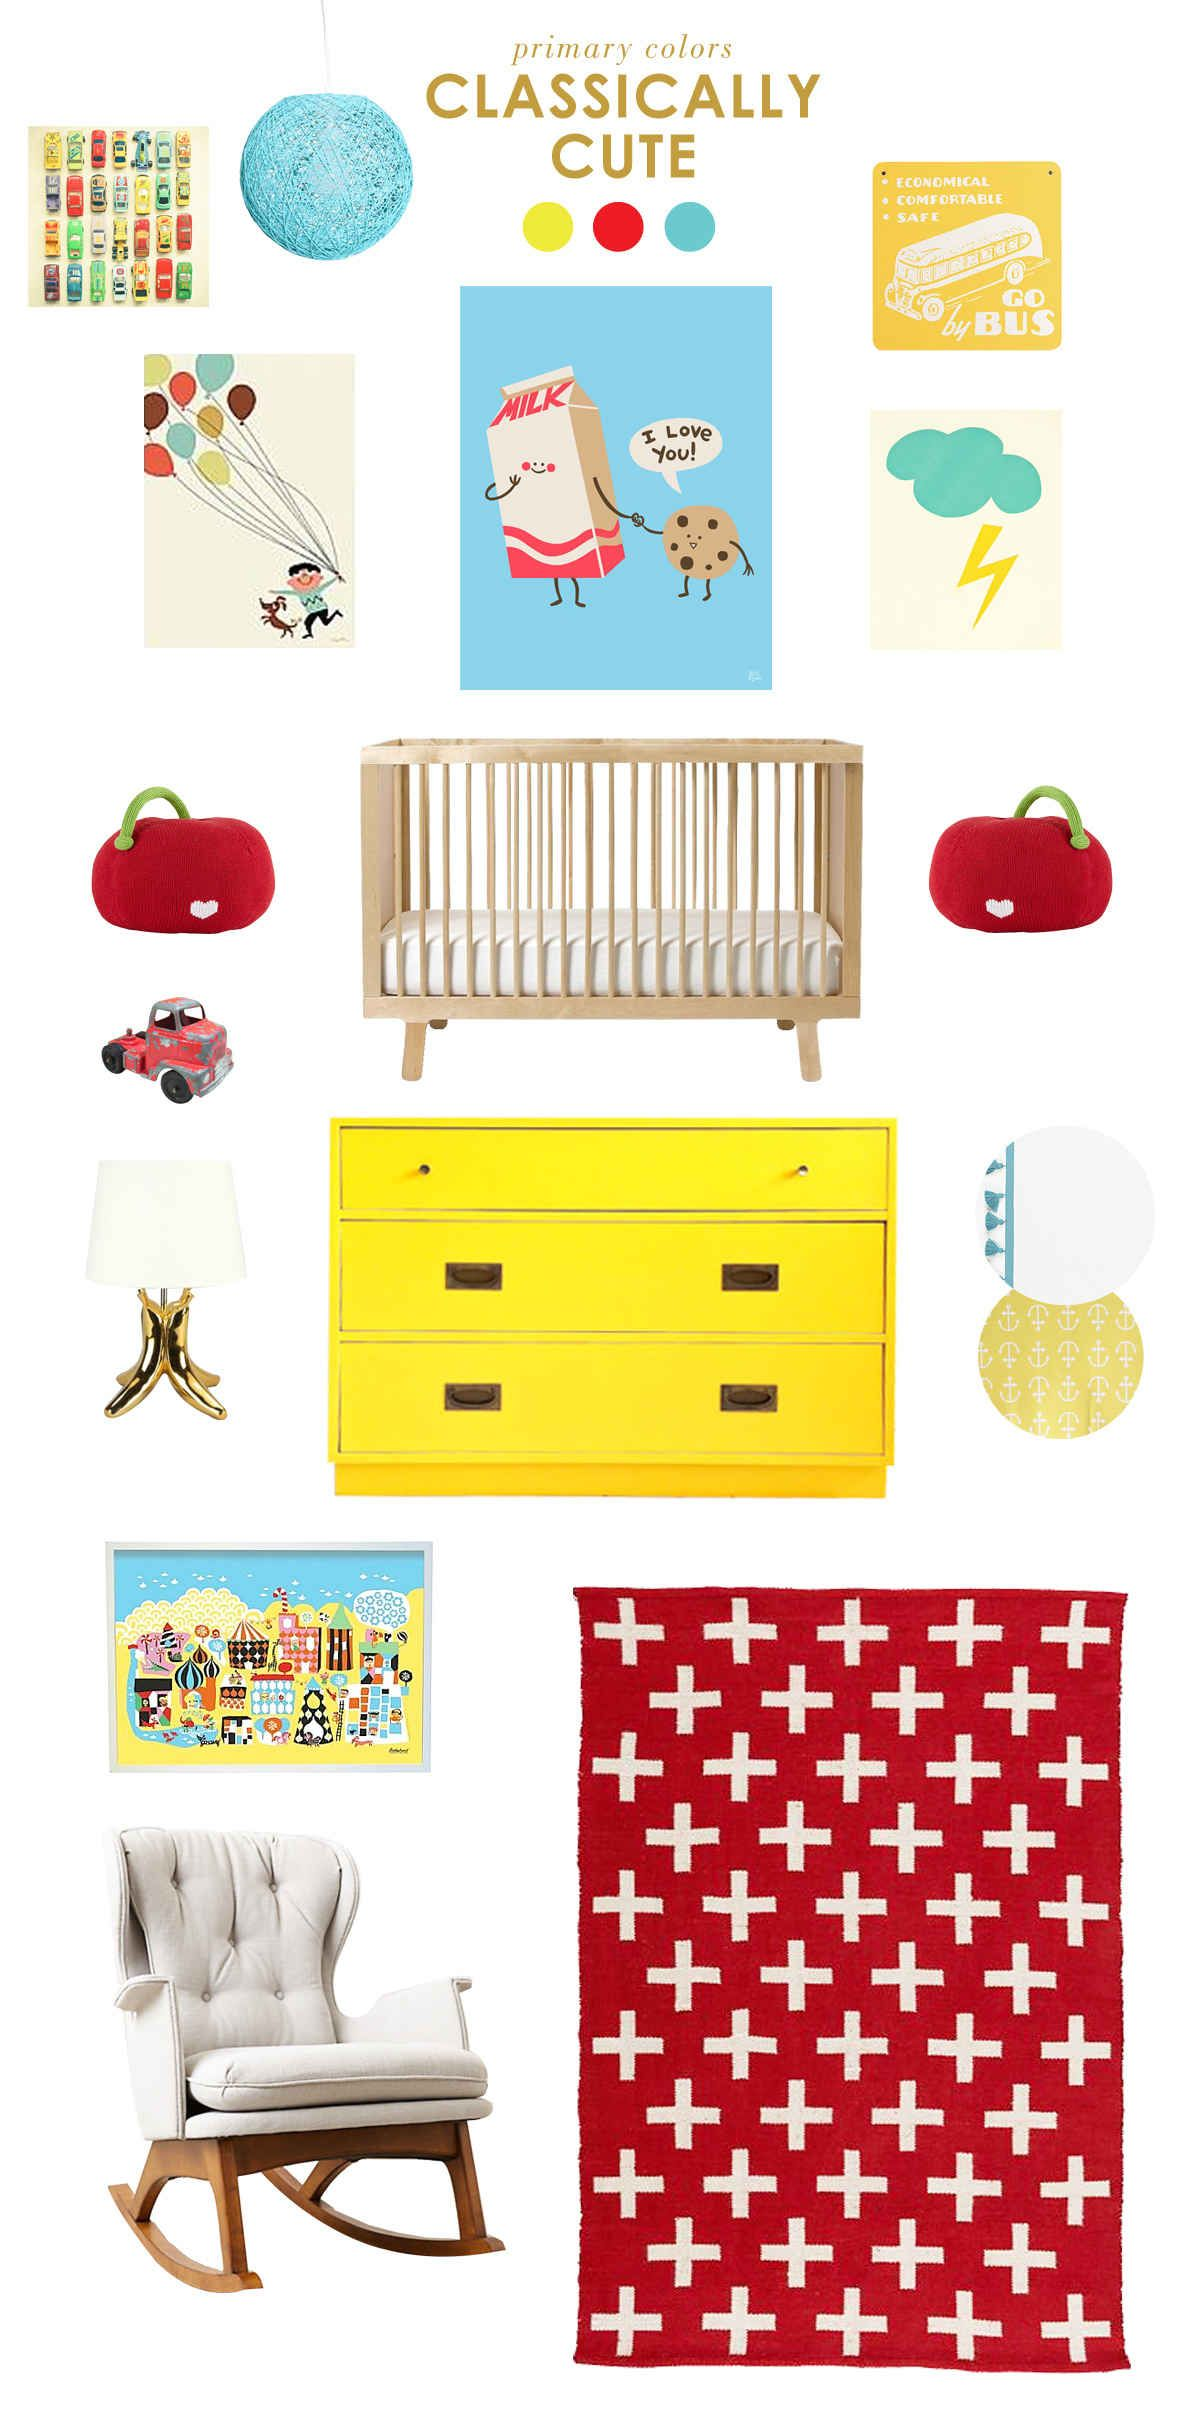 primary colors in the nursery | Primary colors, Playrooms and Nursery